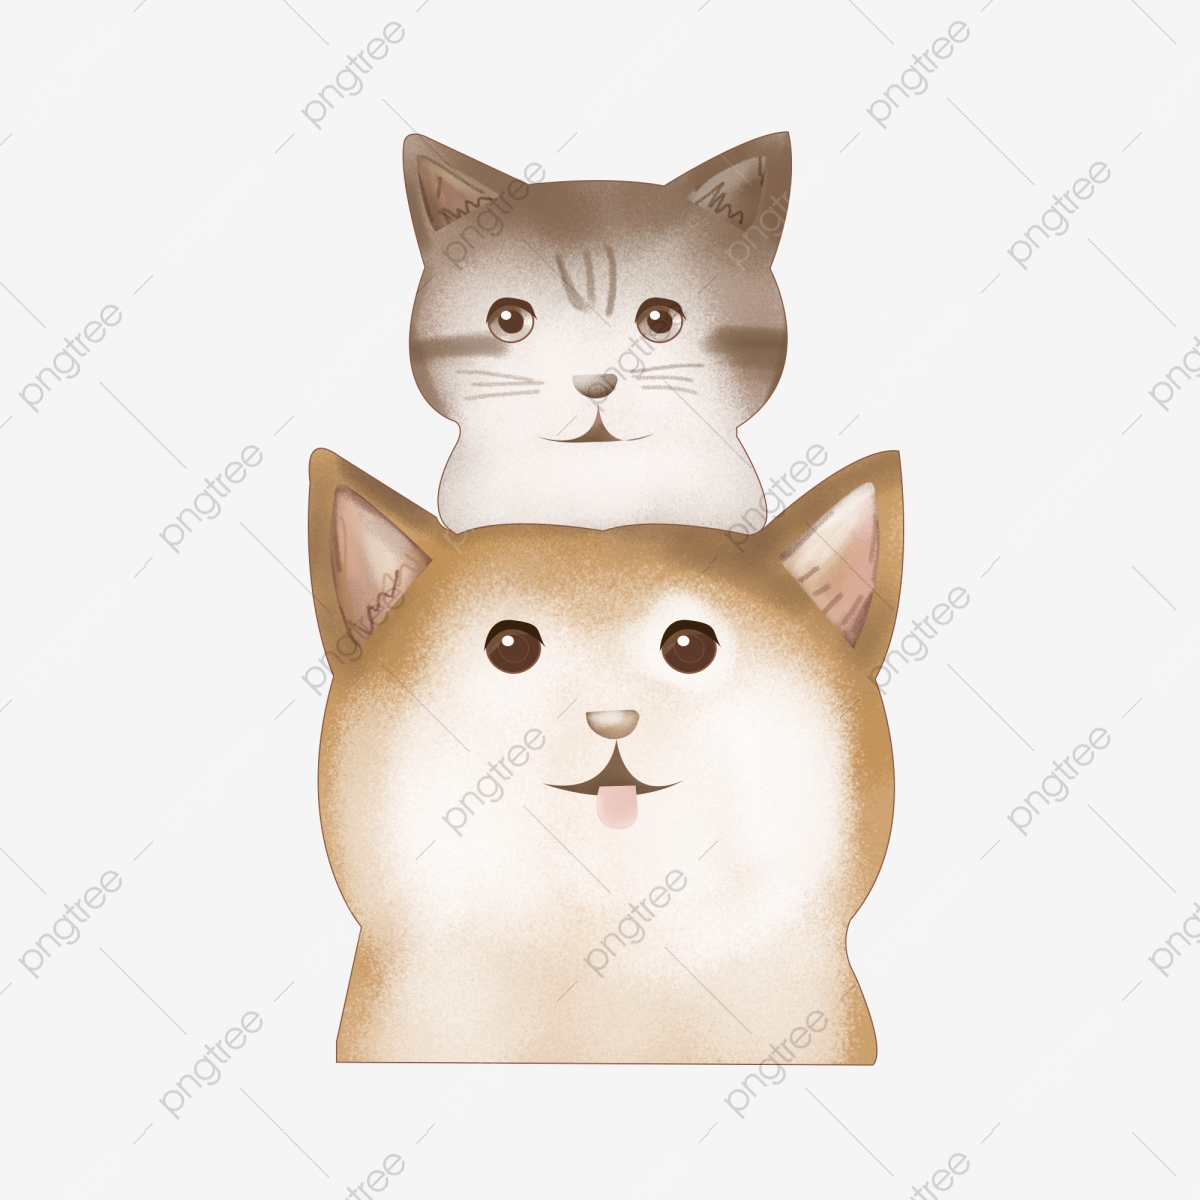 Cat Cat Garfield Pet Cat Hand Painted Cat Cartoon Cat Cat Illustration Png Transparent Clipart Image And Psd File For Free Download